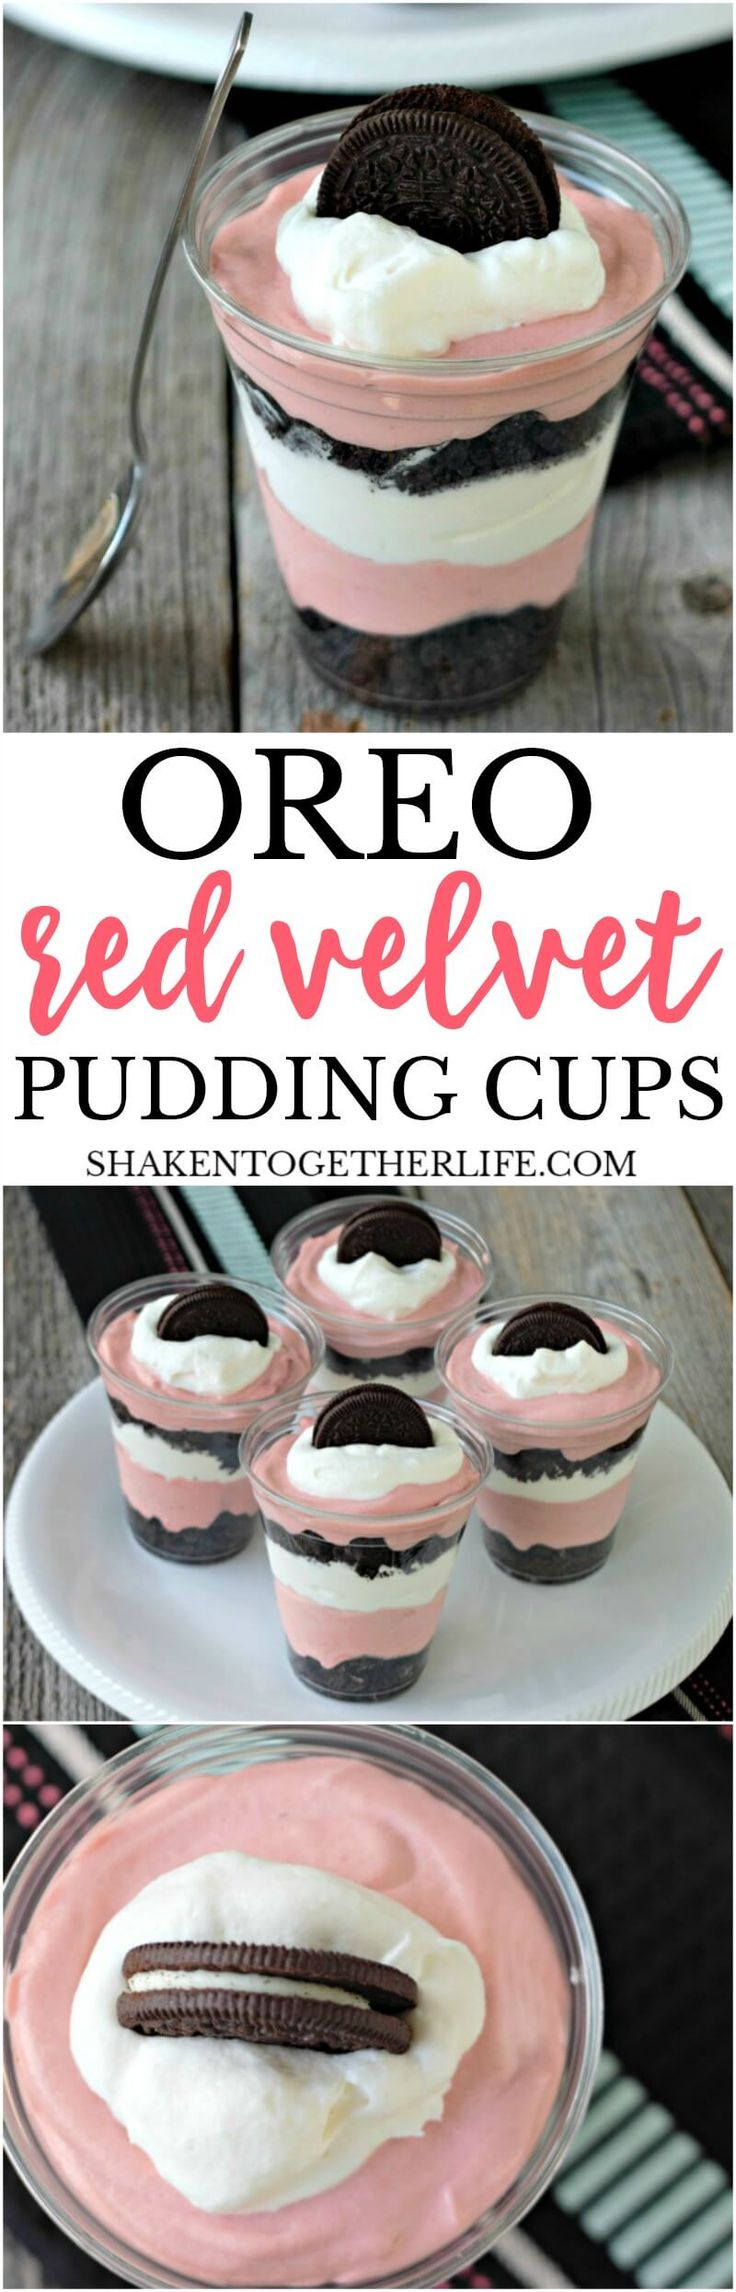 Oreo Red Velvet Pudding Cups - layers of crushed Oreos, creamy red velvet pudding mousse and whipped cream make up this easy no bake dessert!